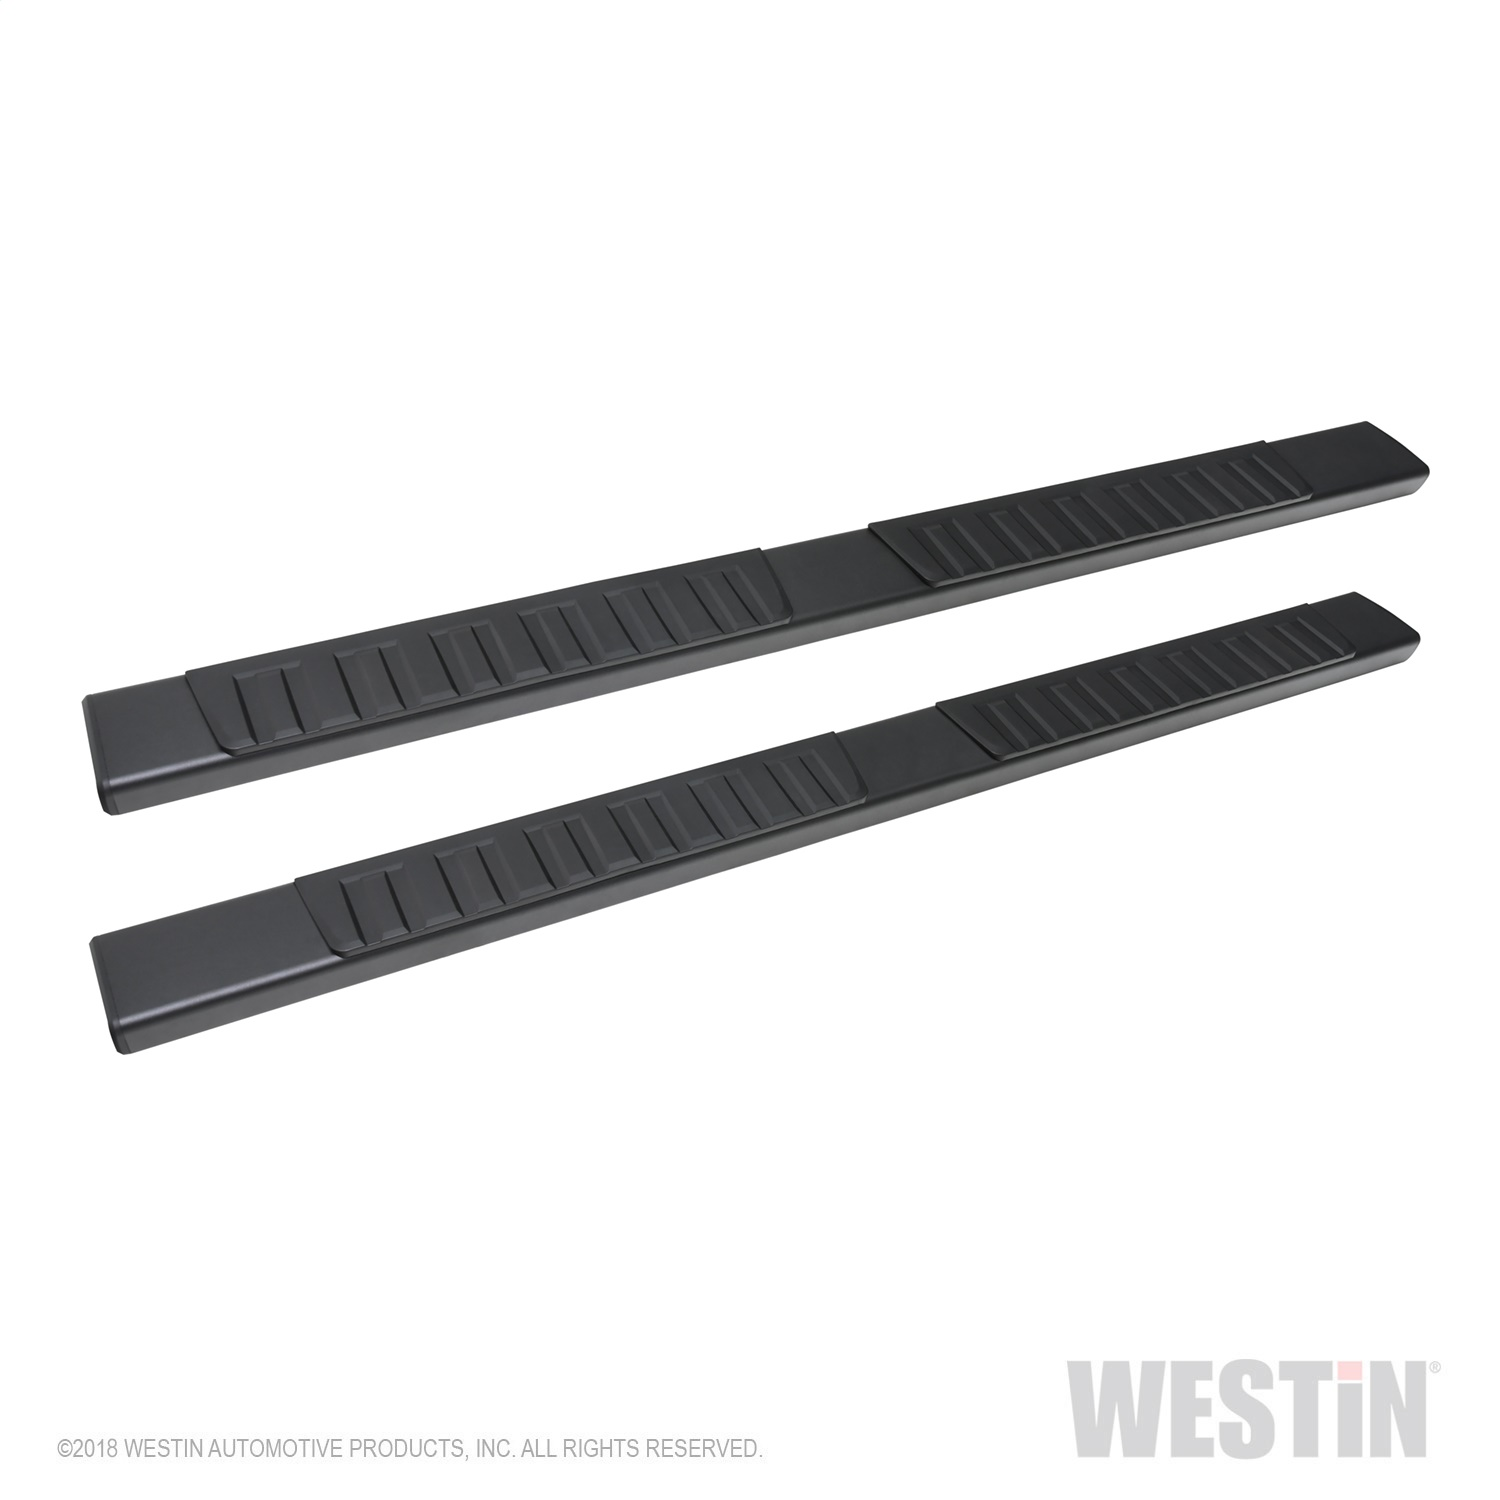 R7 Nerf Step Bars, Black, Mount Kit Included,